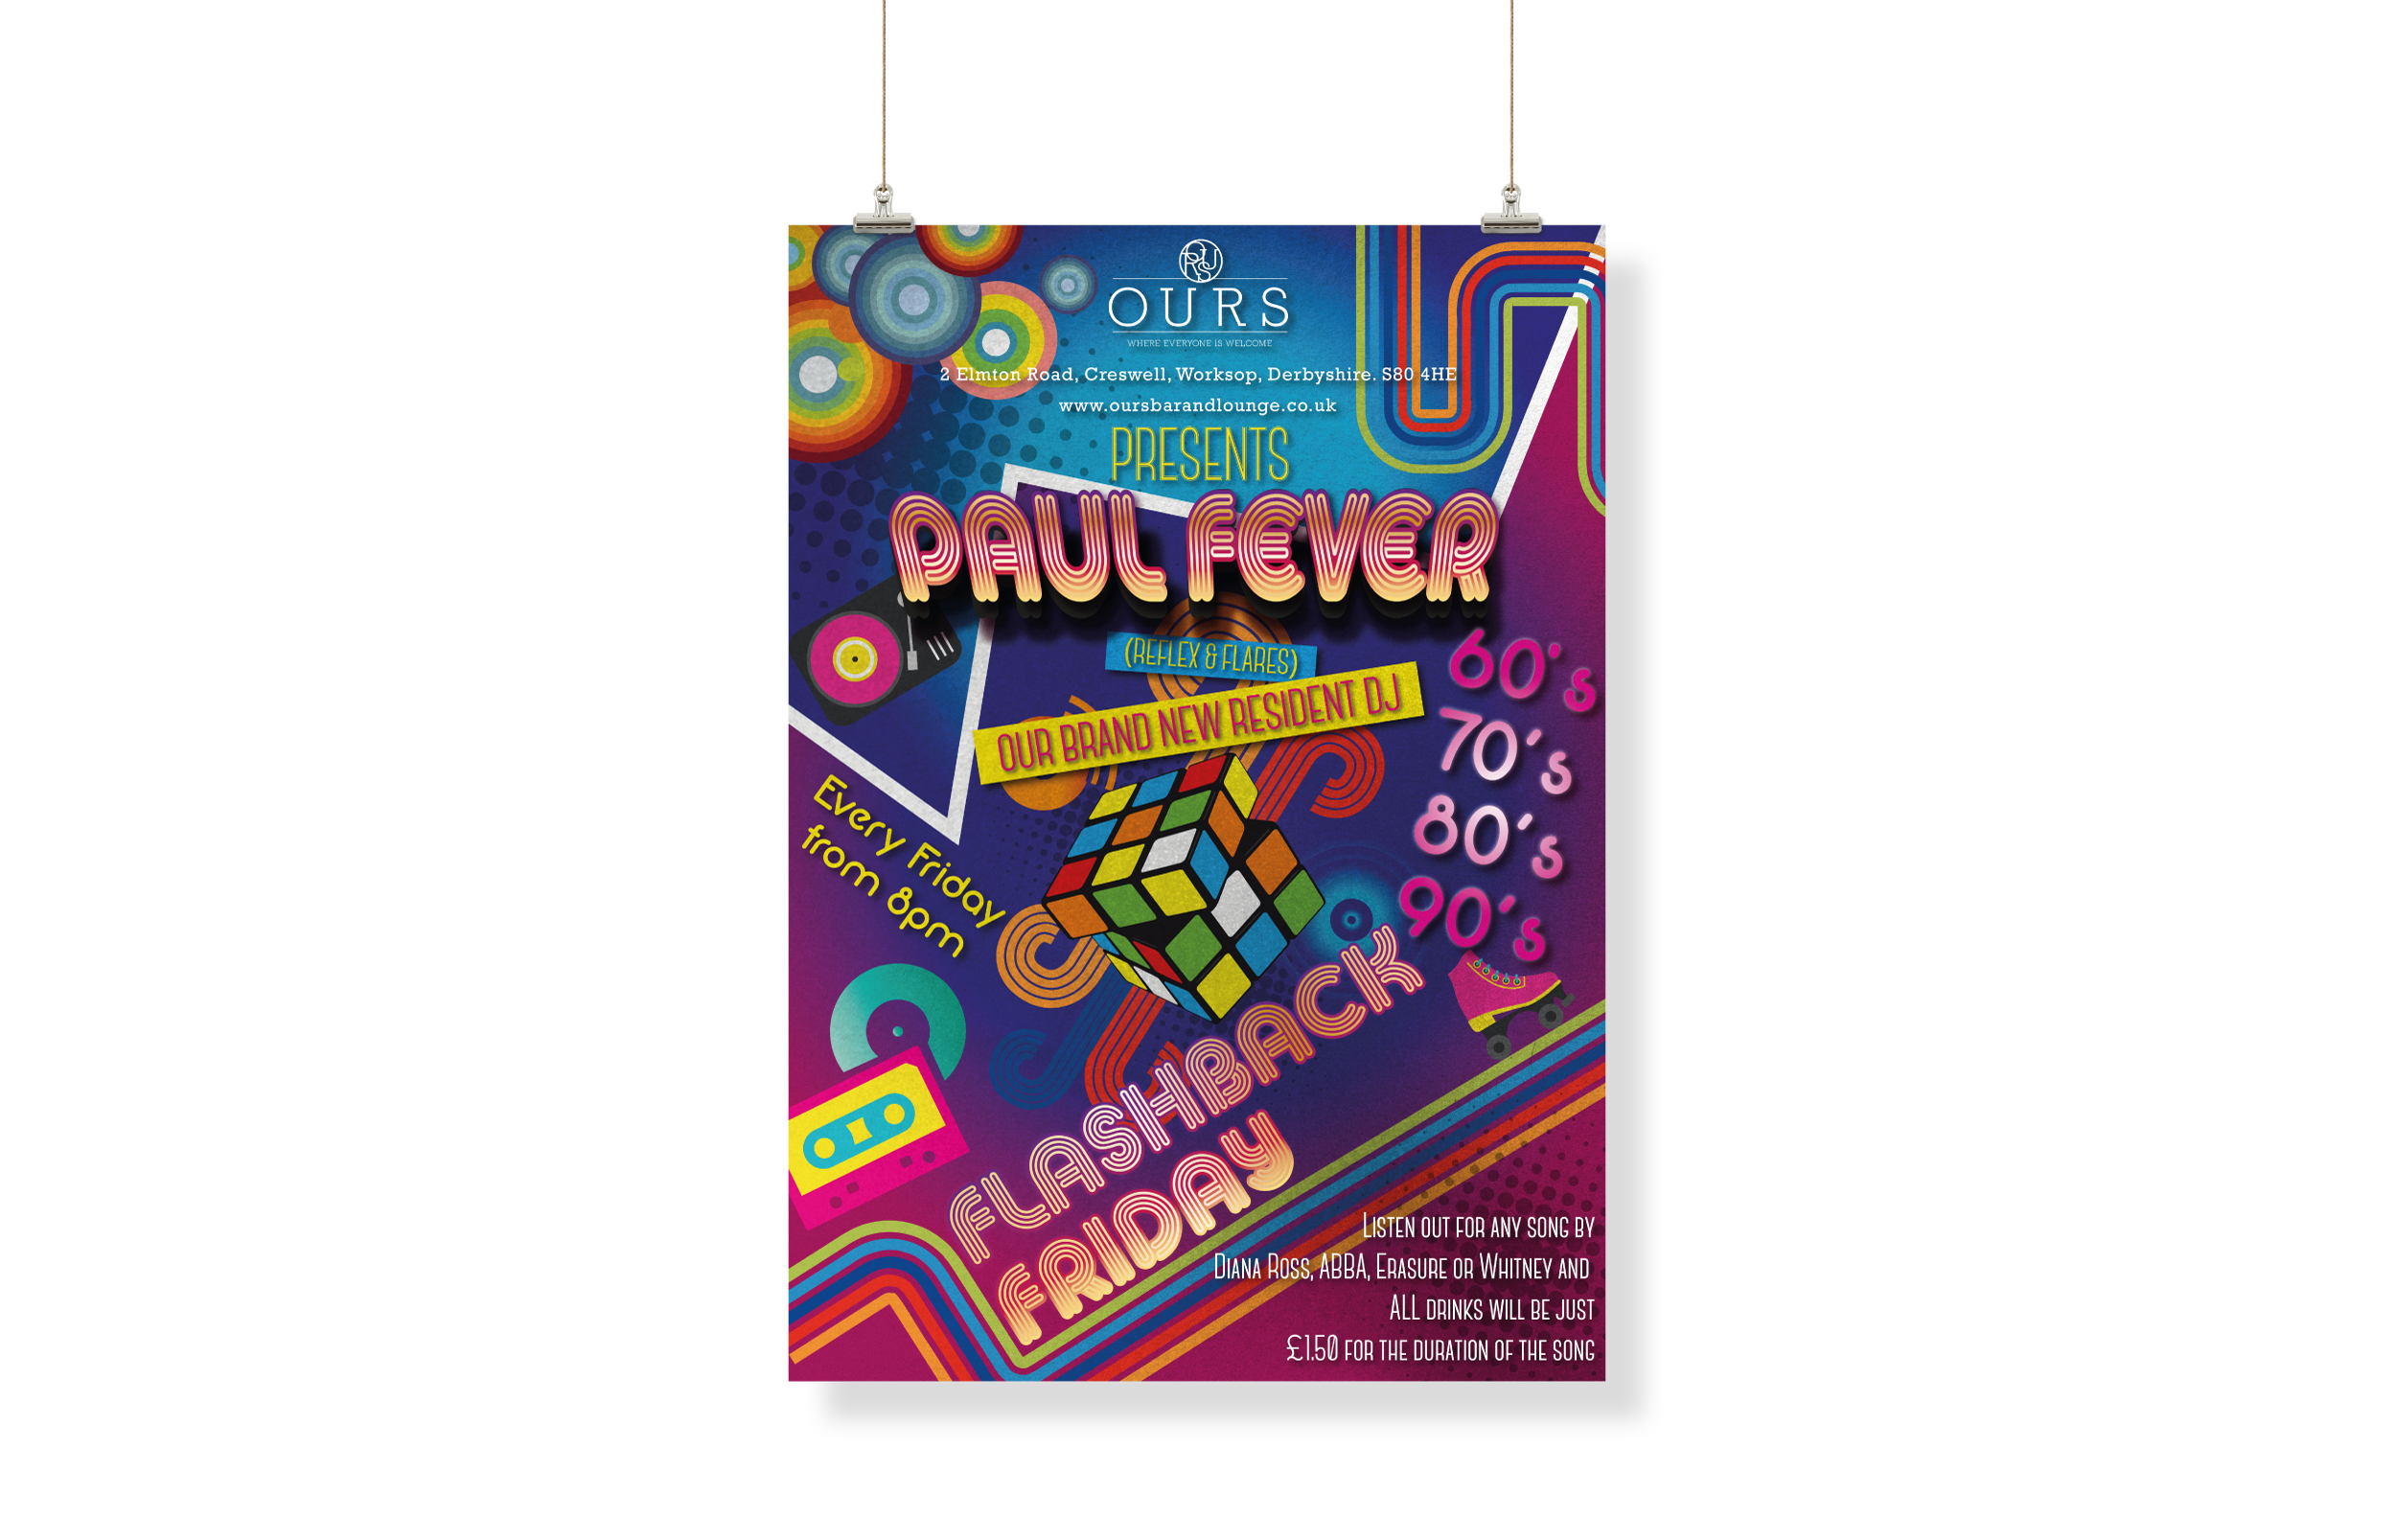 OURS Bar & Lounge - New Flashback Friday Poster Design